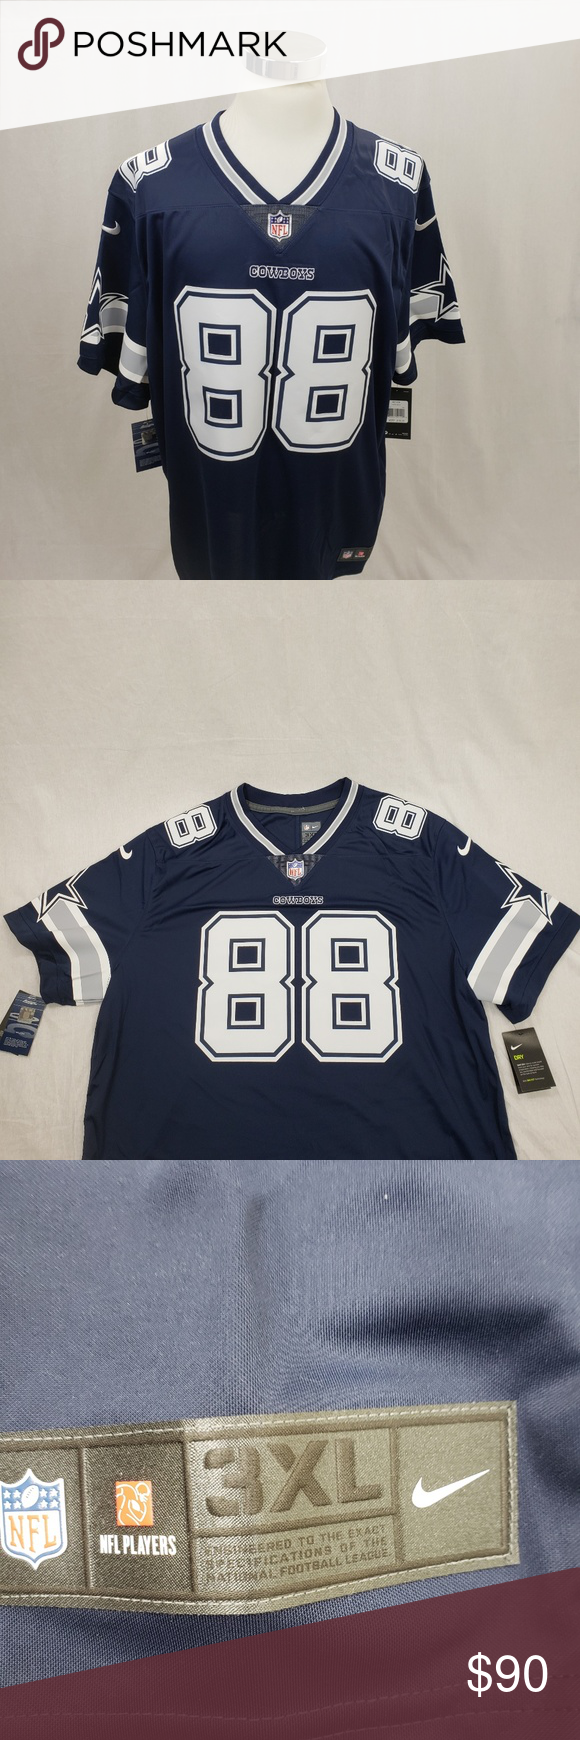 the best attitude e6f68 76ef2 Dallas Cowboys Dez Bryant Limited Jersey 3XL BRAND: Nike ...